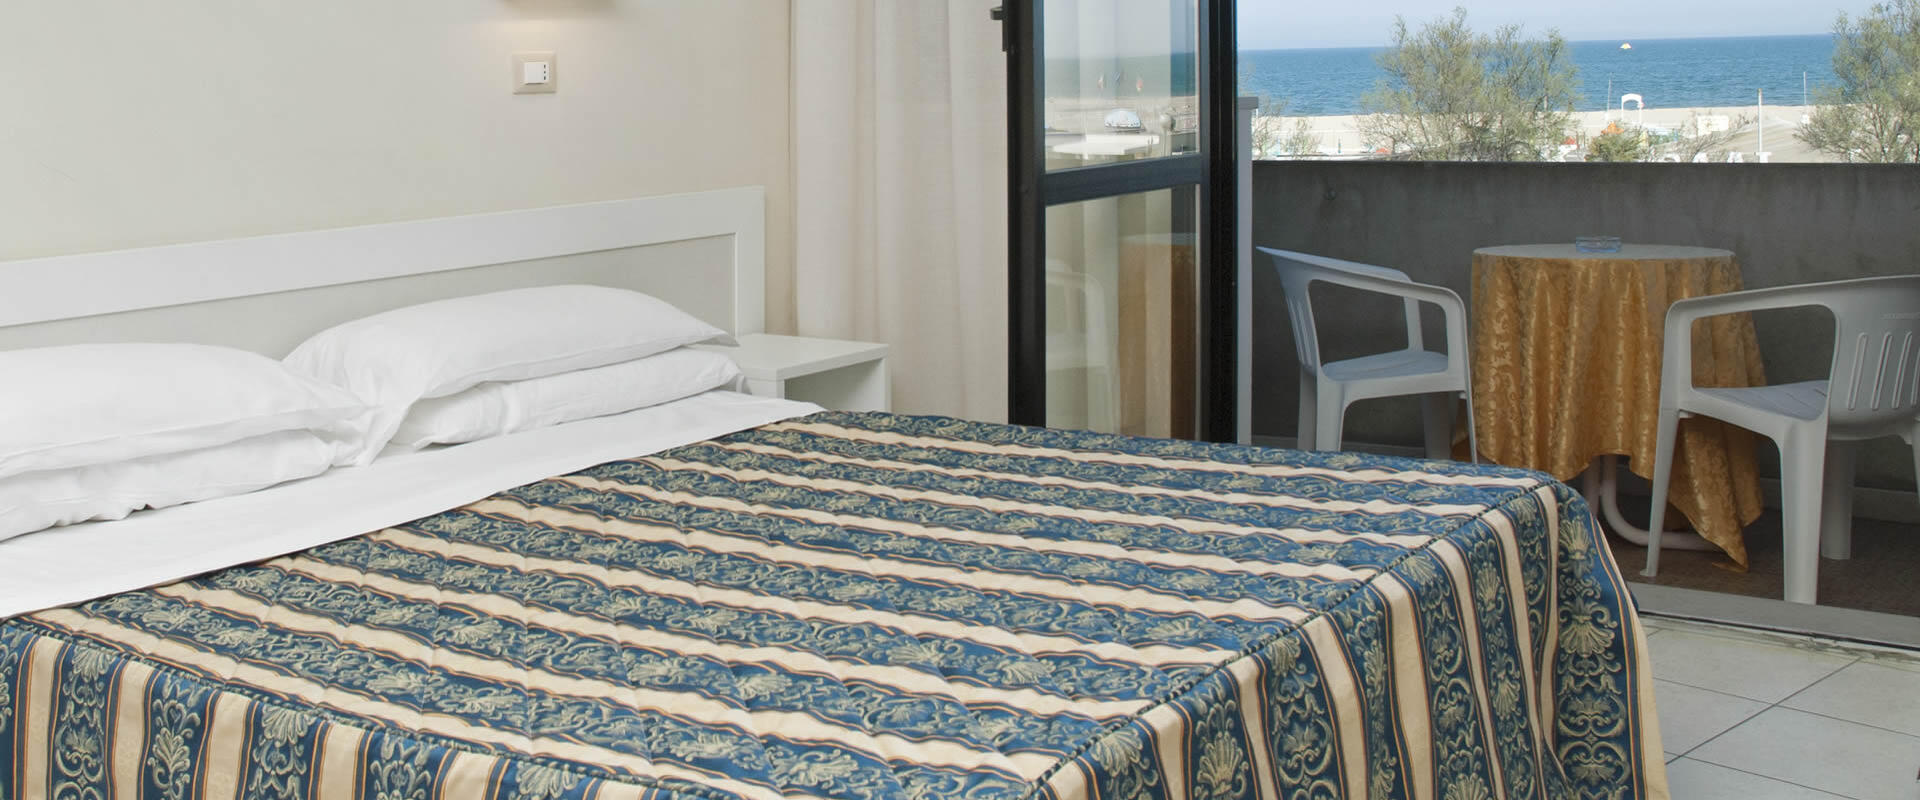 genzianellahotelcervia fr contacts 001